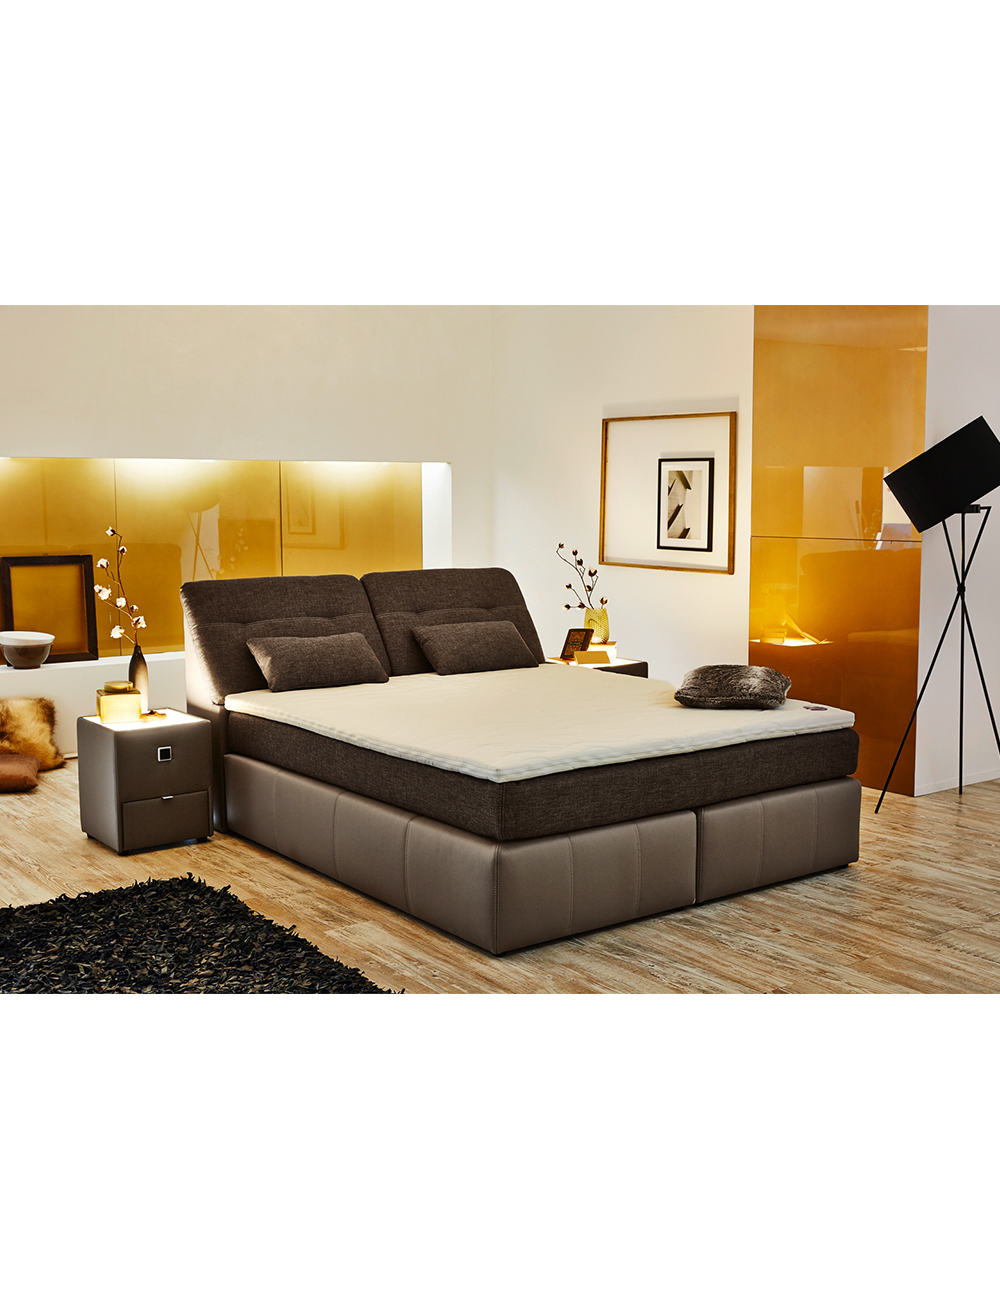 boxspring bett palace 180 x 200 cm braun. Black Bedroom Furniture Sets. Home Design Ideas